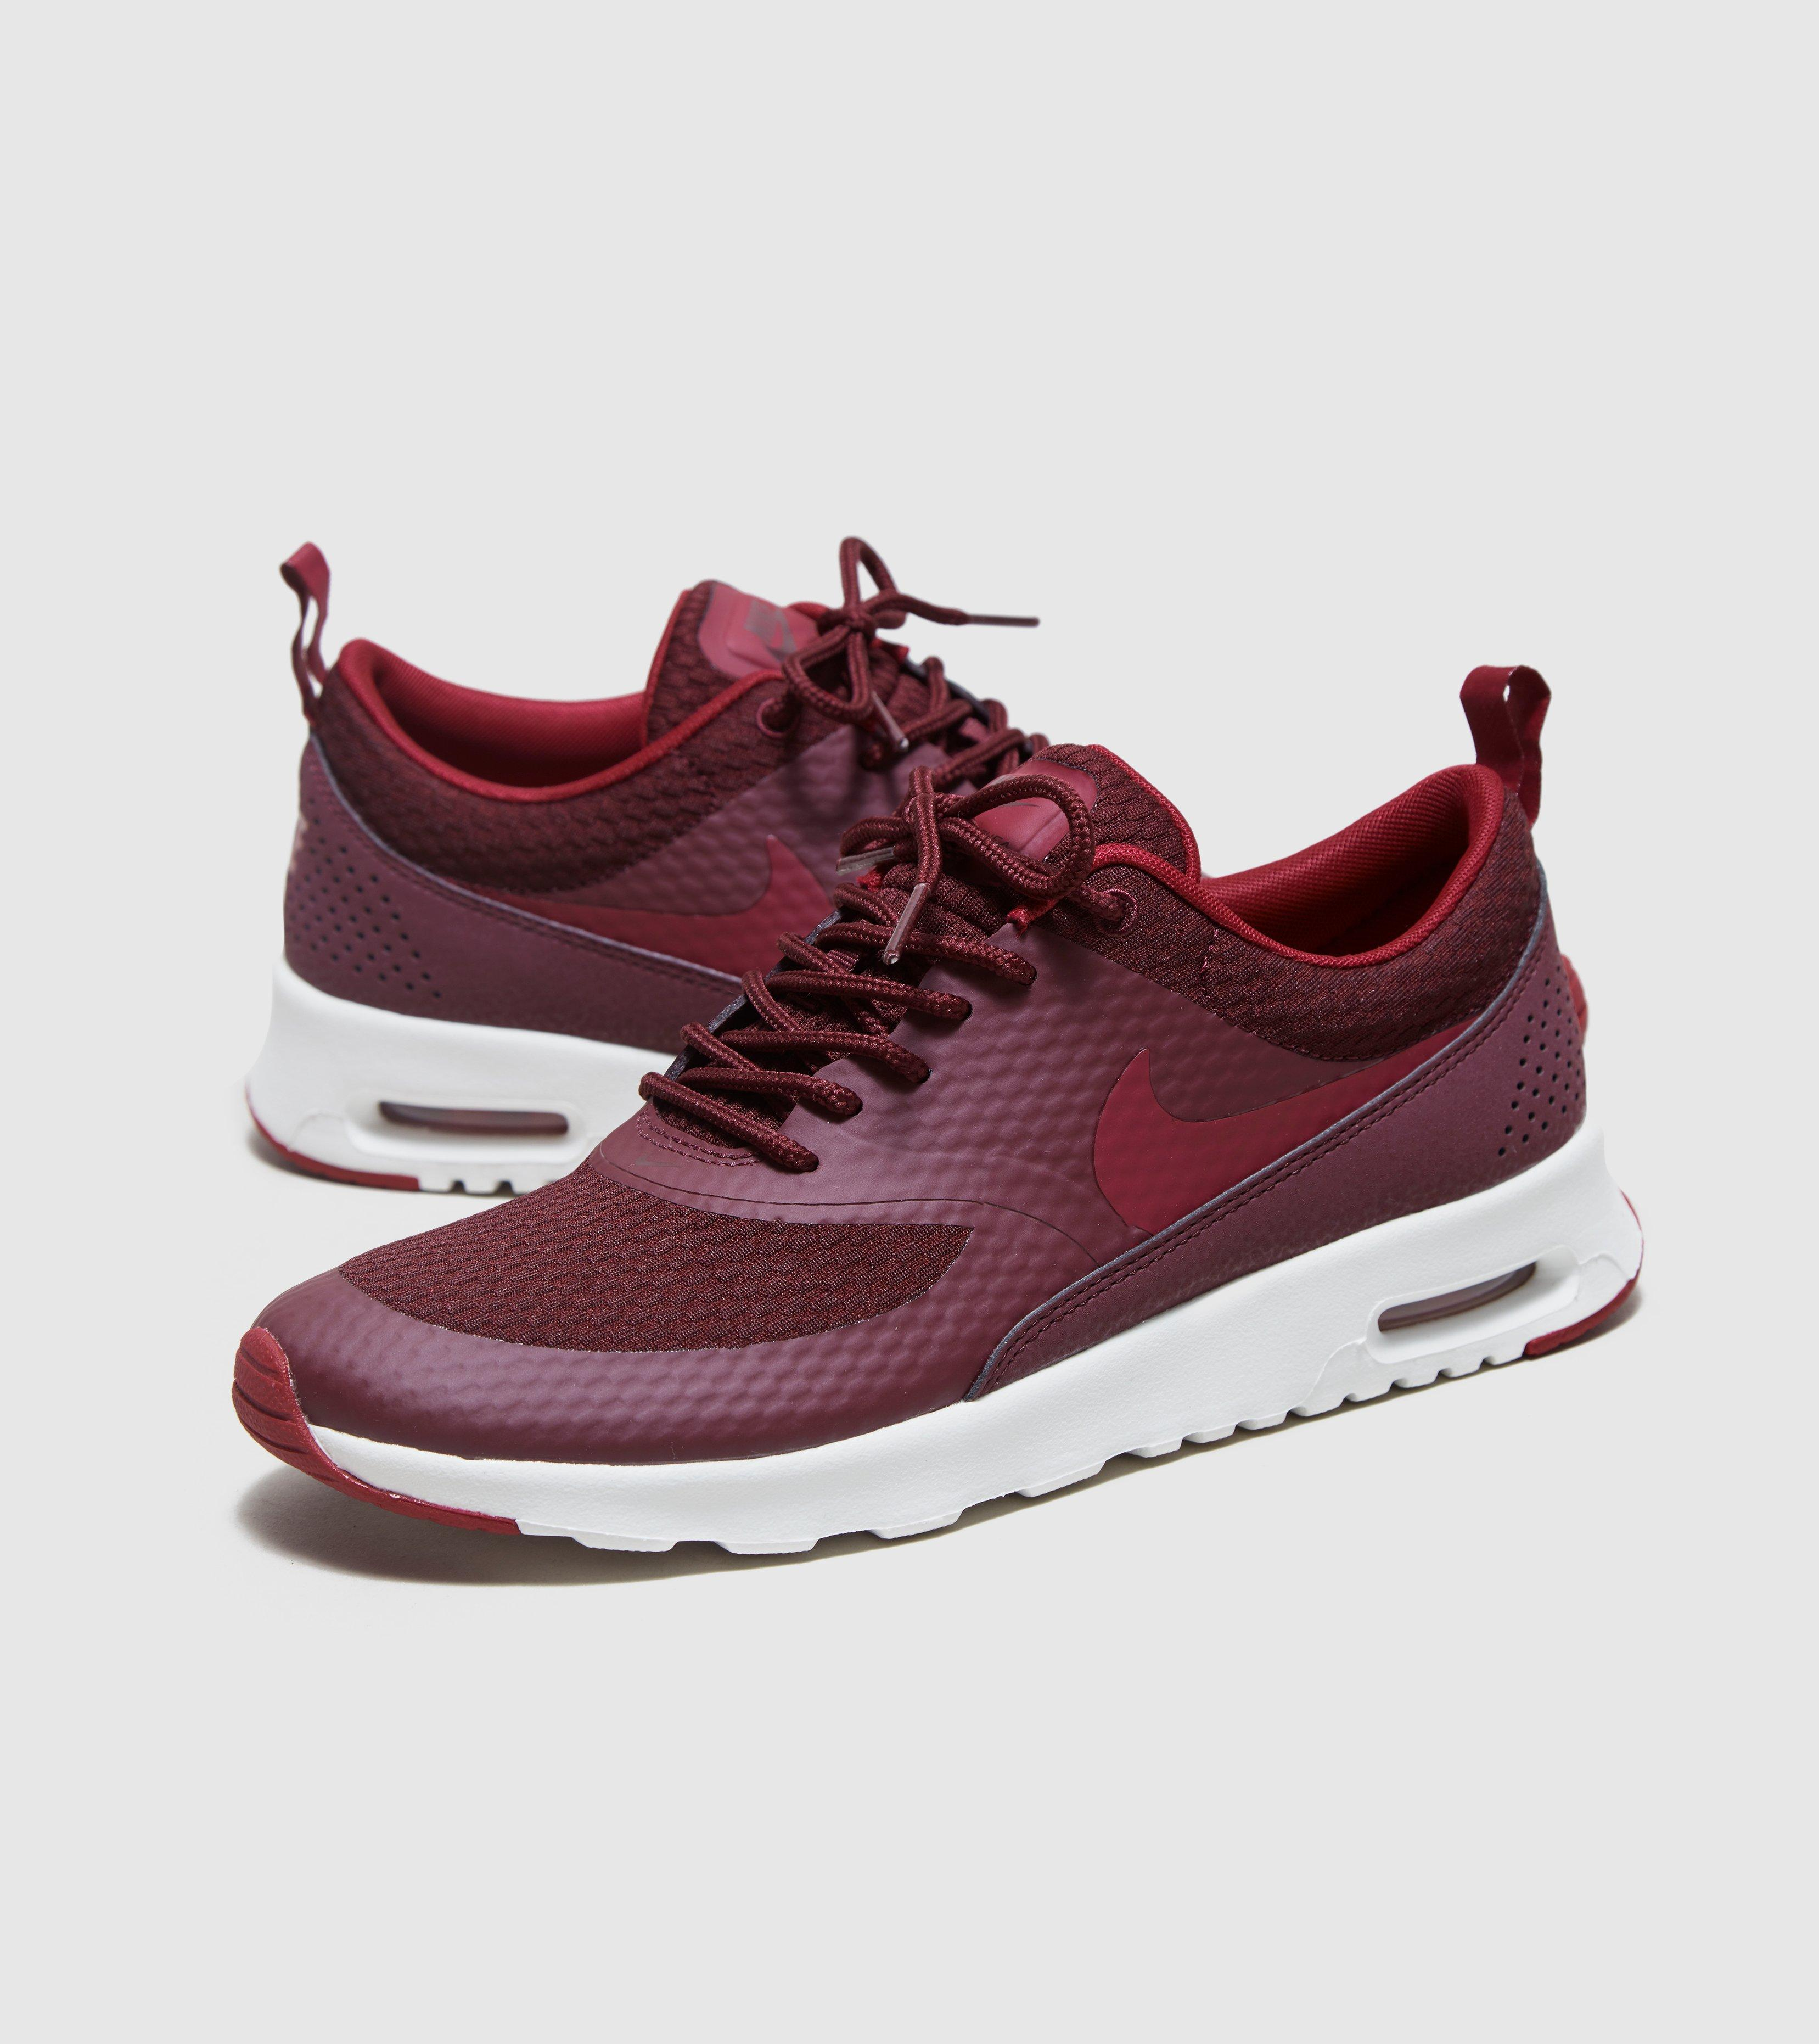 nike air max thea womens burgundy dress